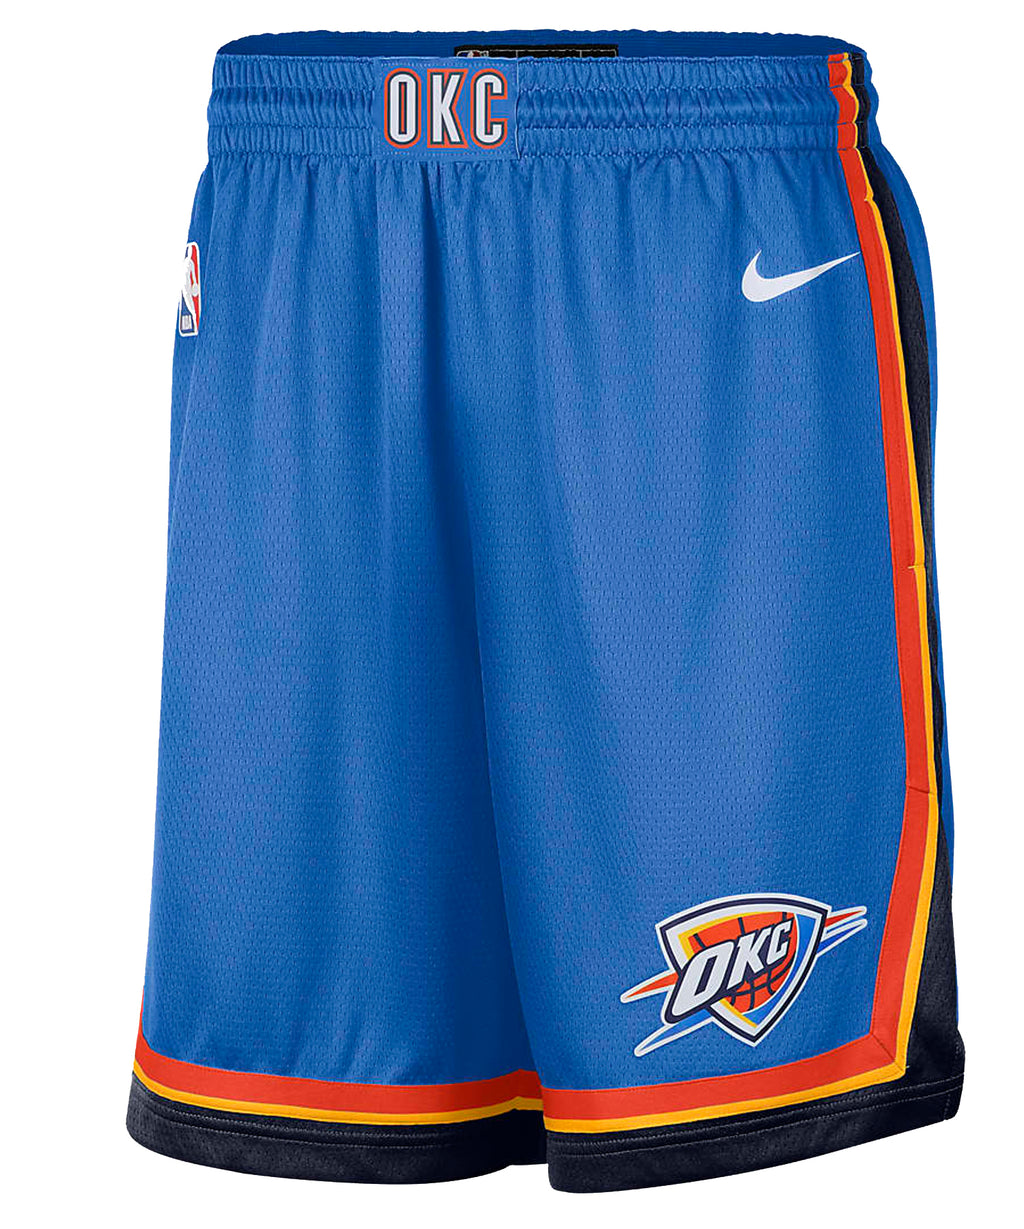 Oklahoma City Thunder Nike Icon Editon Shorts